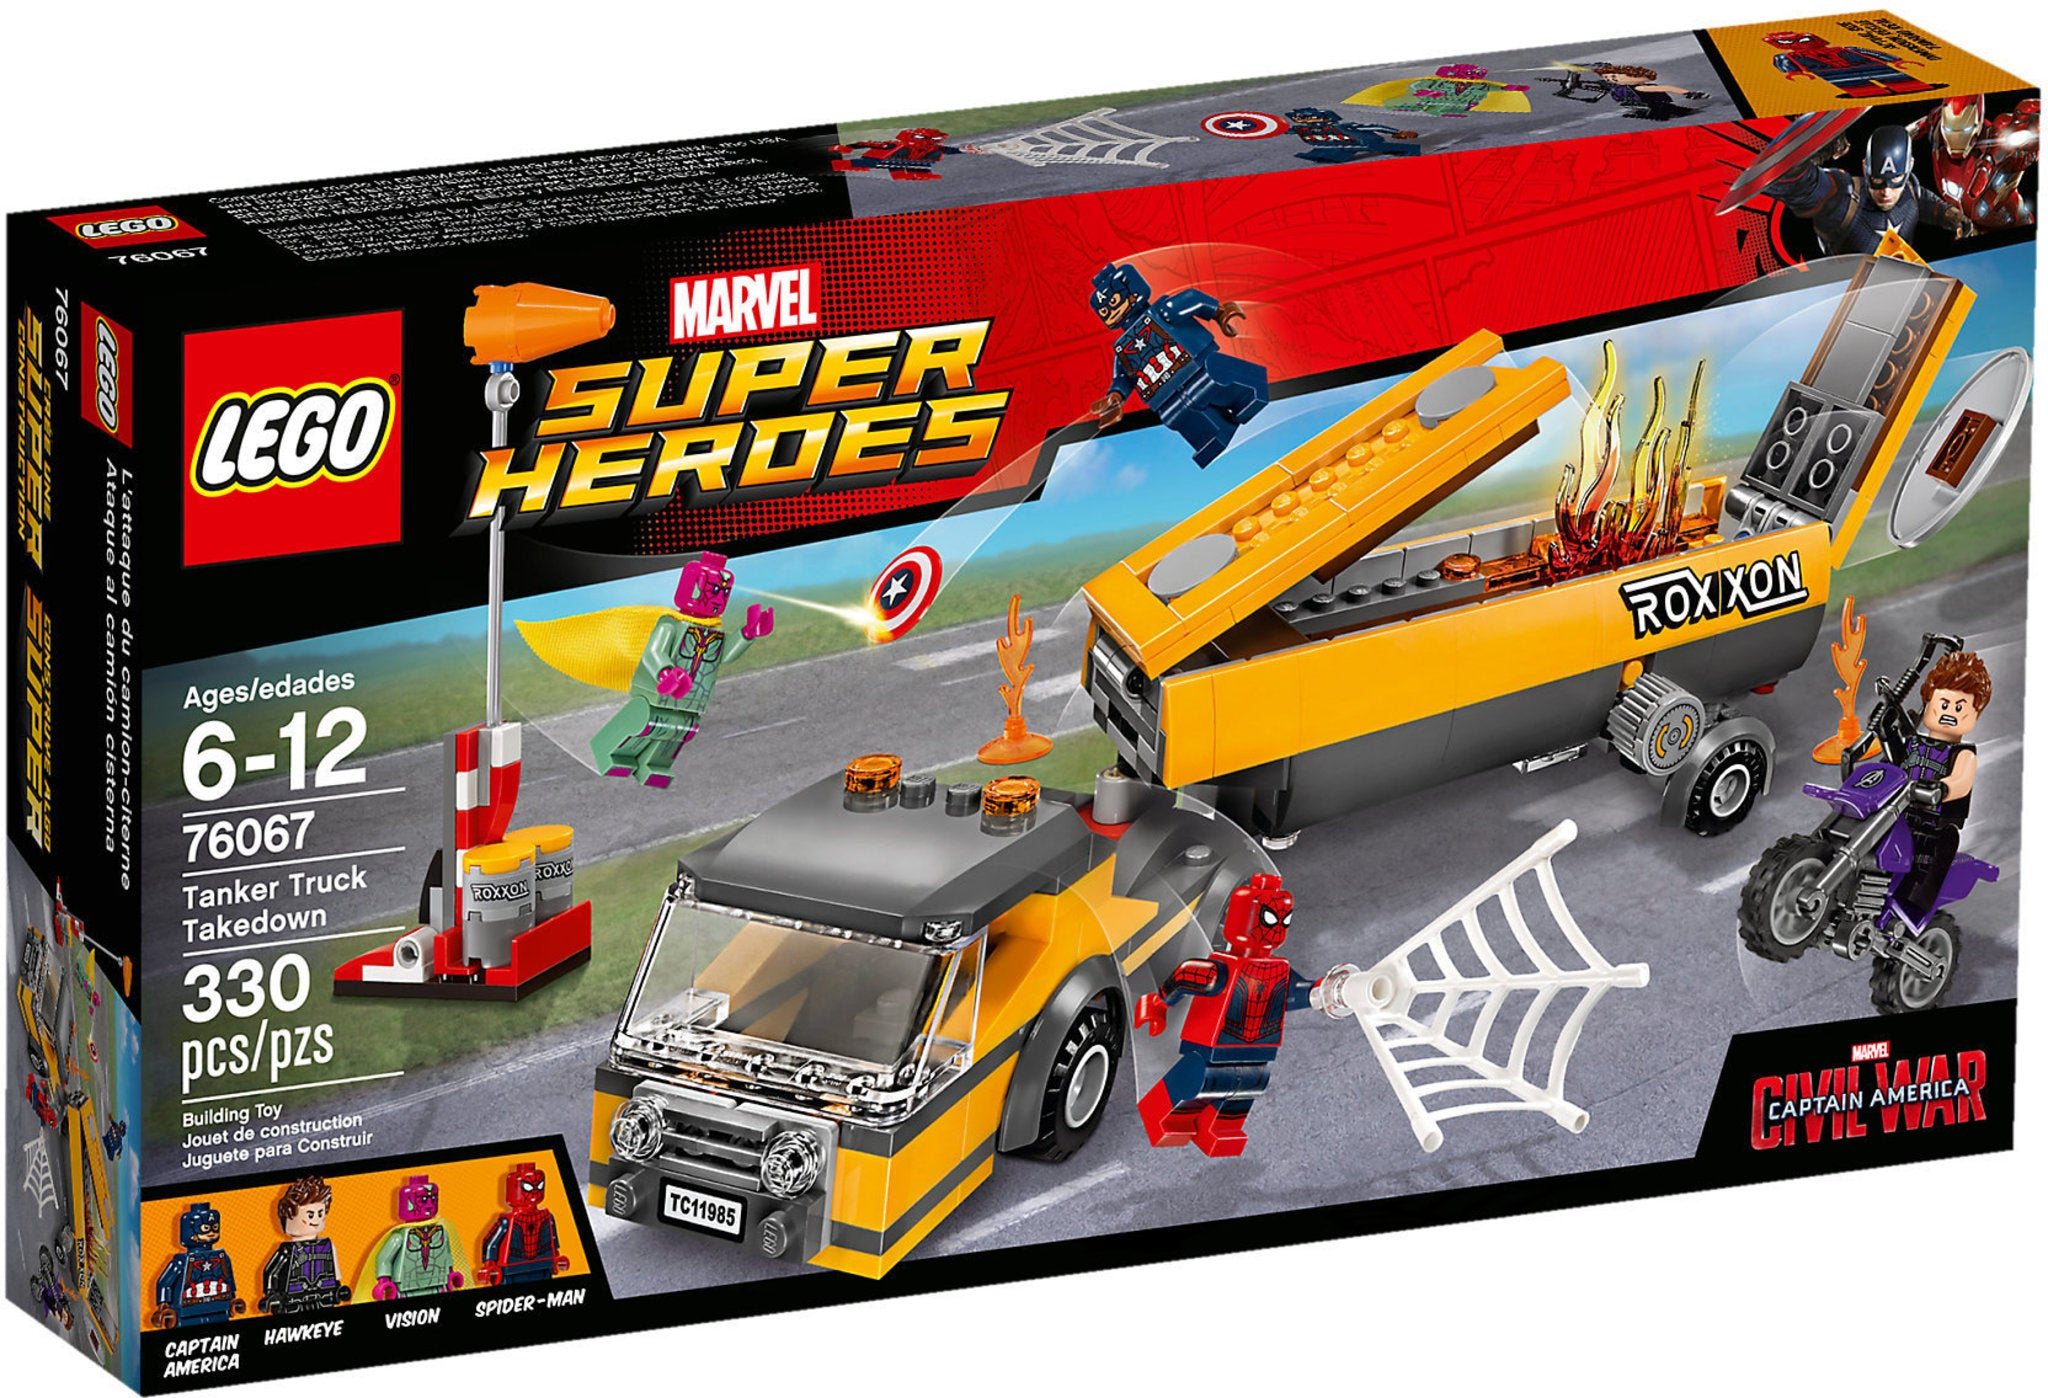 LEGO - Marvel Super Heroes - Captain America: Civil War - Tanker Truck Takedown + Wind Sock + Motorbike + 4 Minifigures (76067)